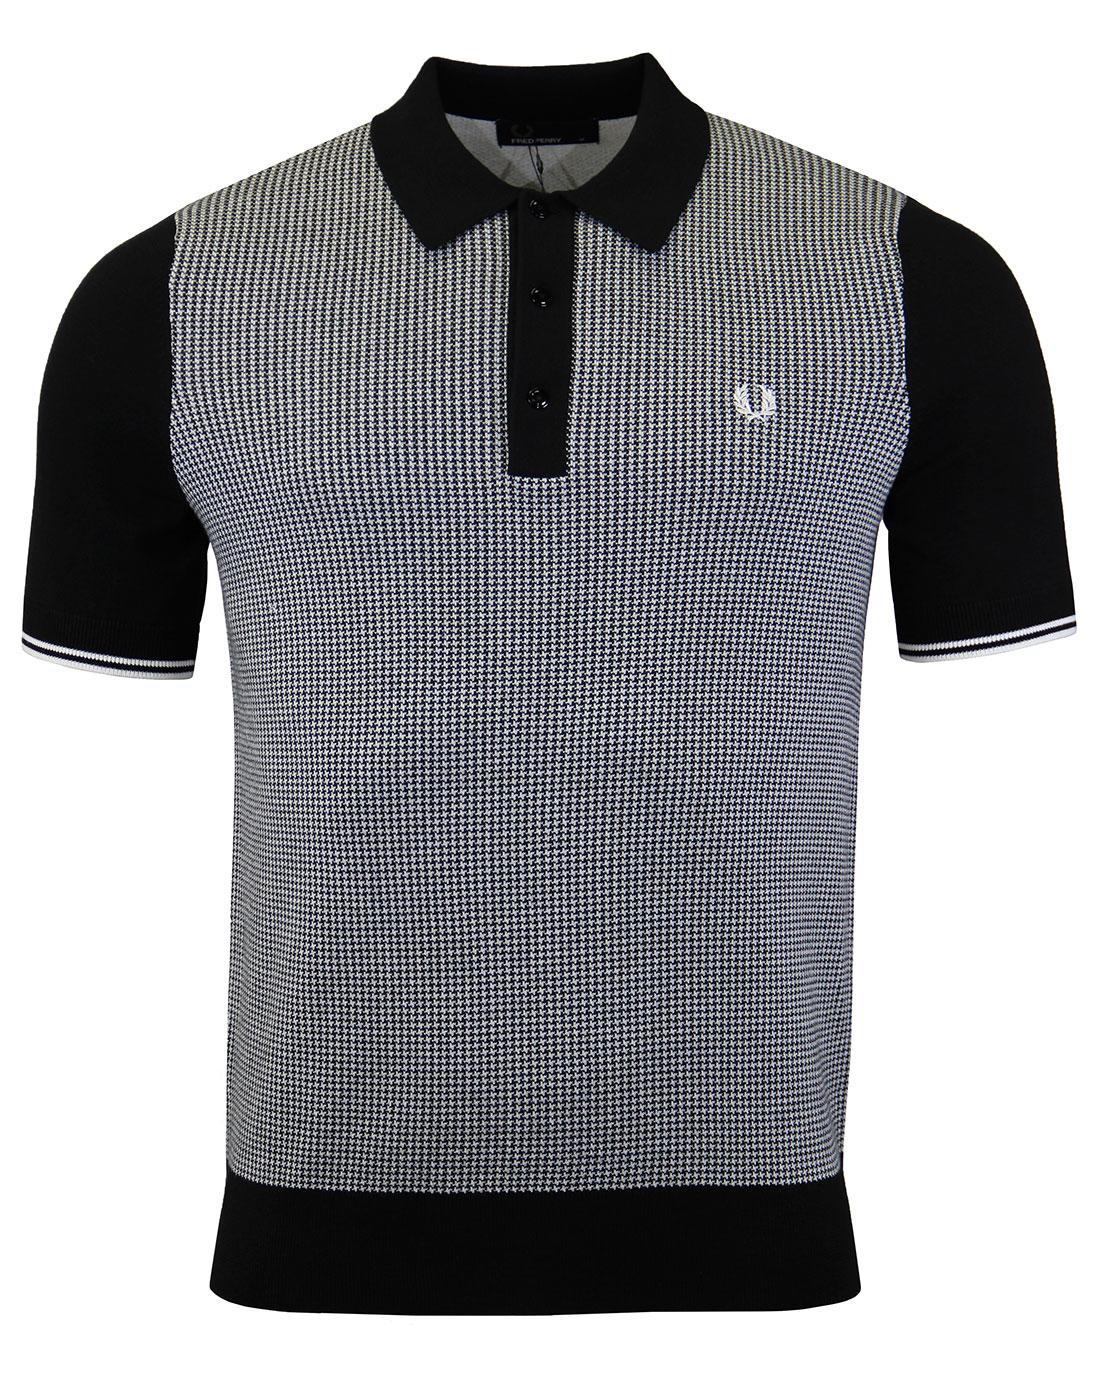 FRED PERRY K2527 Houndstooth Knitted Black